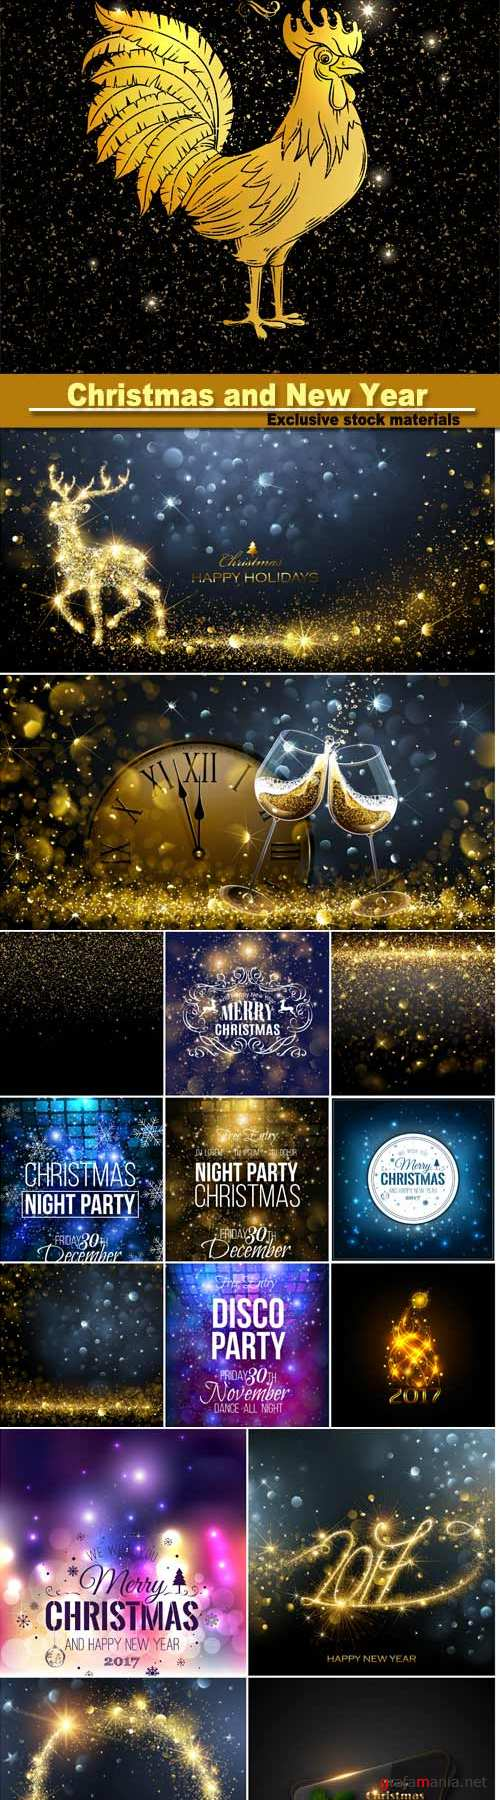 Christmas and New Year background with snowflakes, light, stars, vector illustration